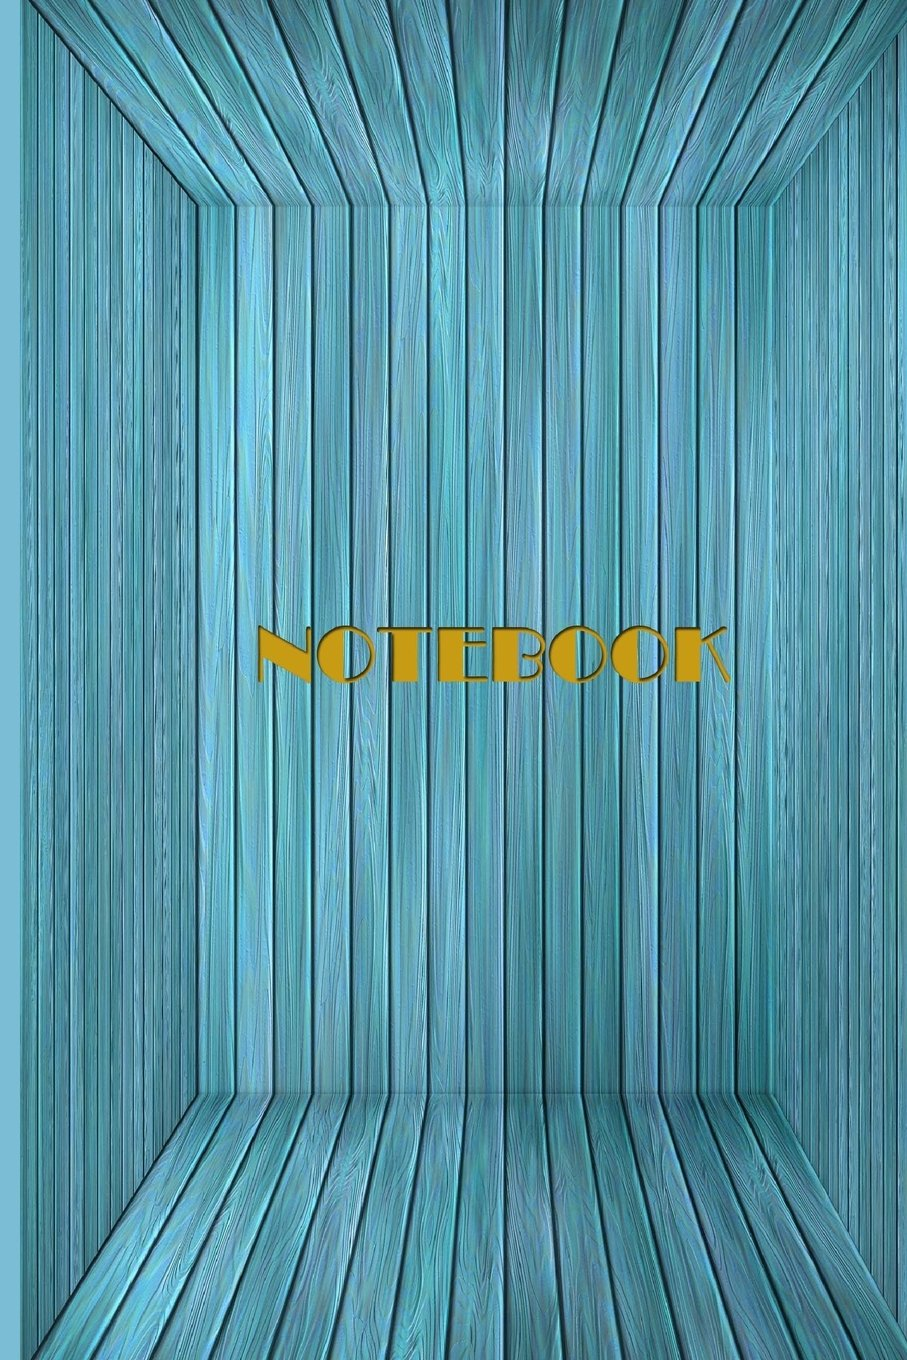 Download Notebook: Box Notebook - Lined Journal Notebook, 100 pages, Cream paper, 6 x 9 inches pdf